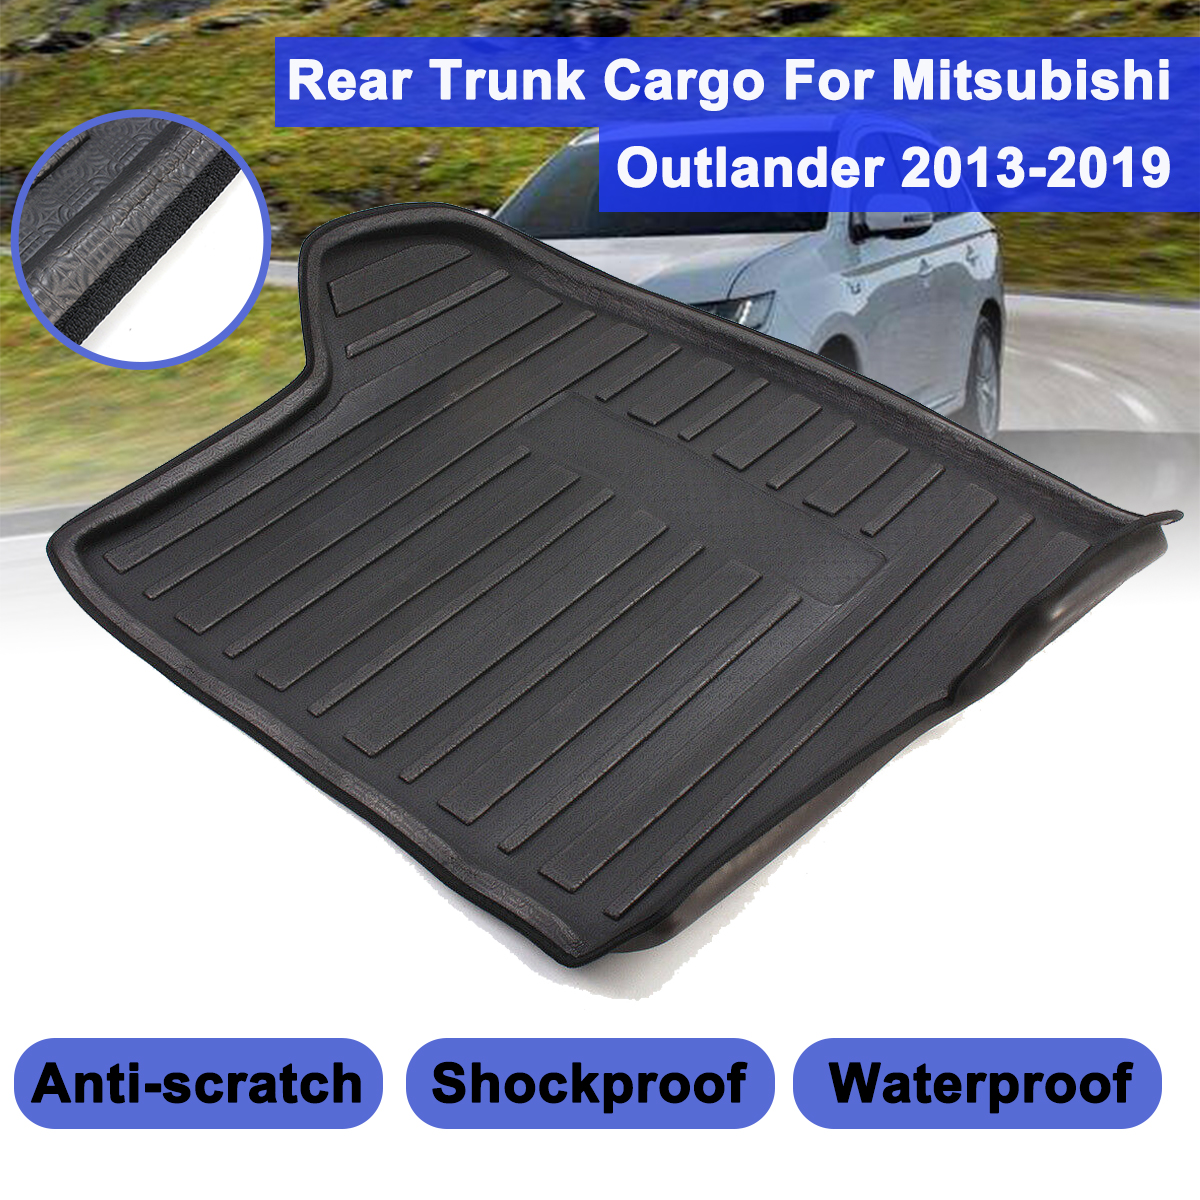 Cargo-Liner Floor-Mat Mitsubishi Outlander Waterproof for Rear Trunk Anti-Skid Shock-Proof title=